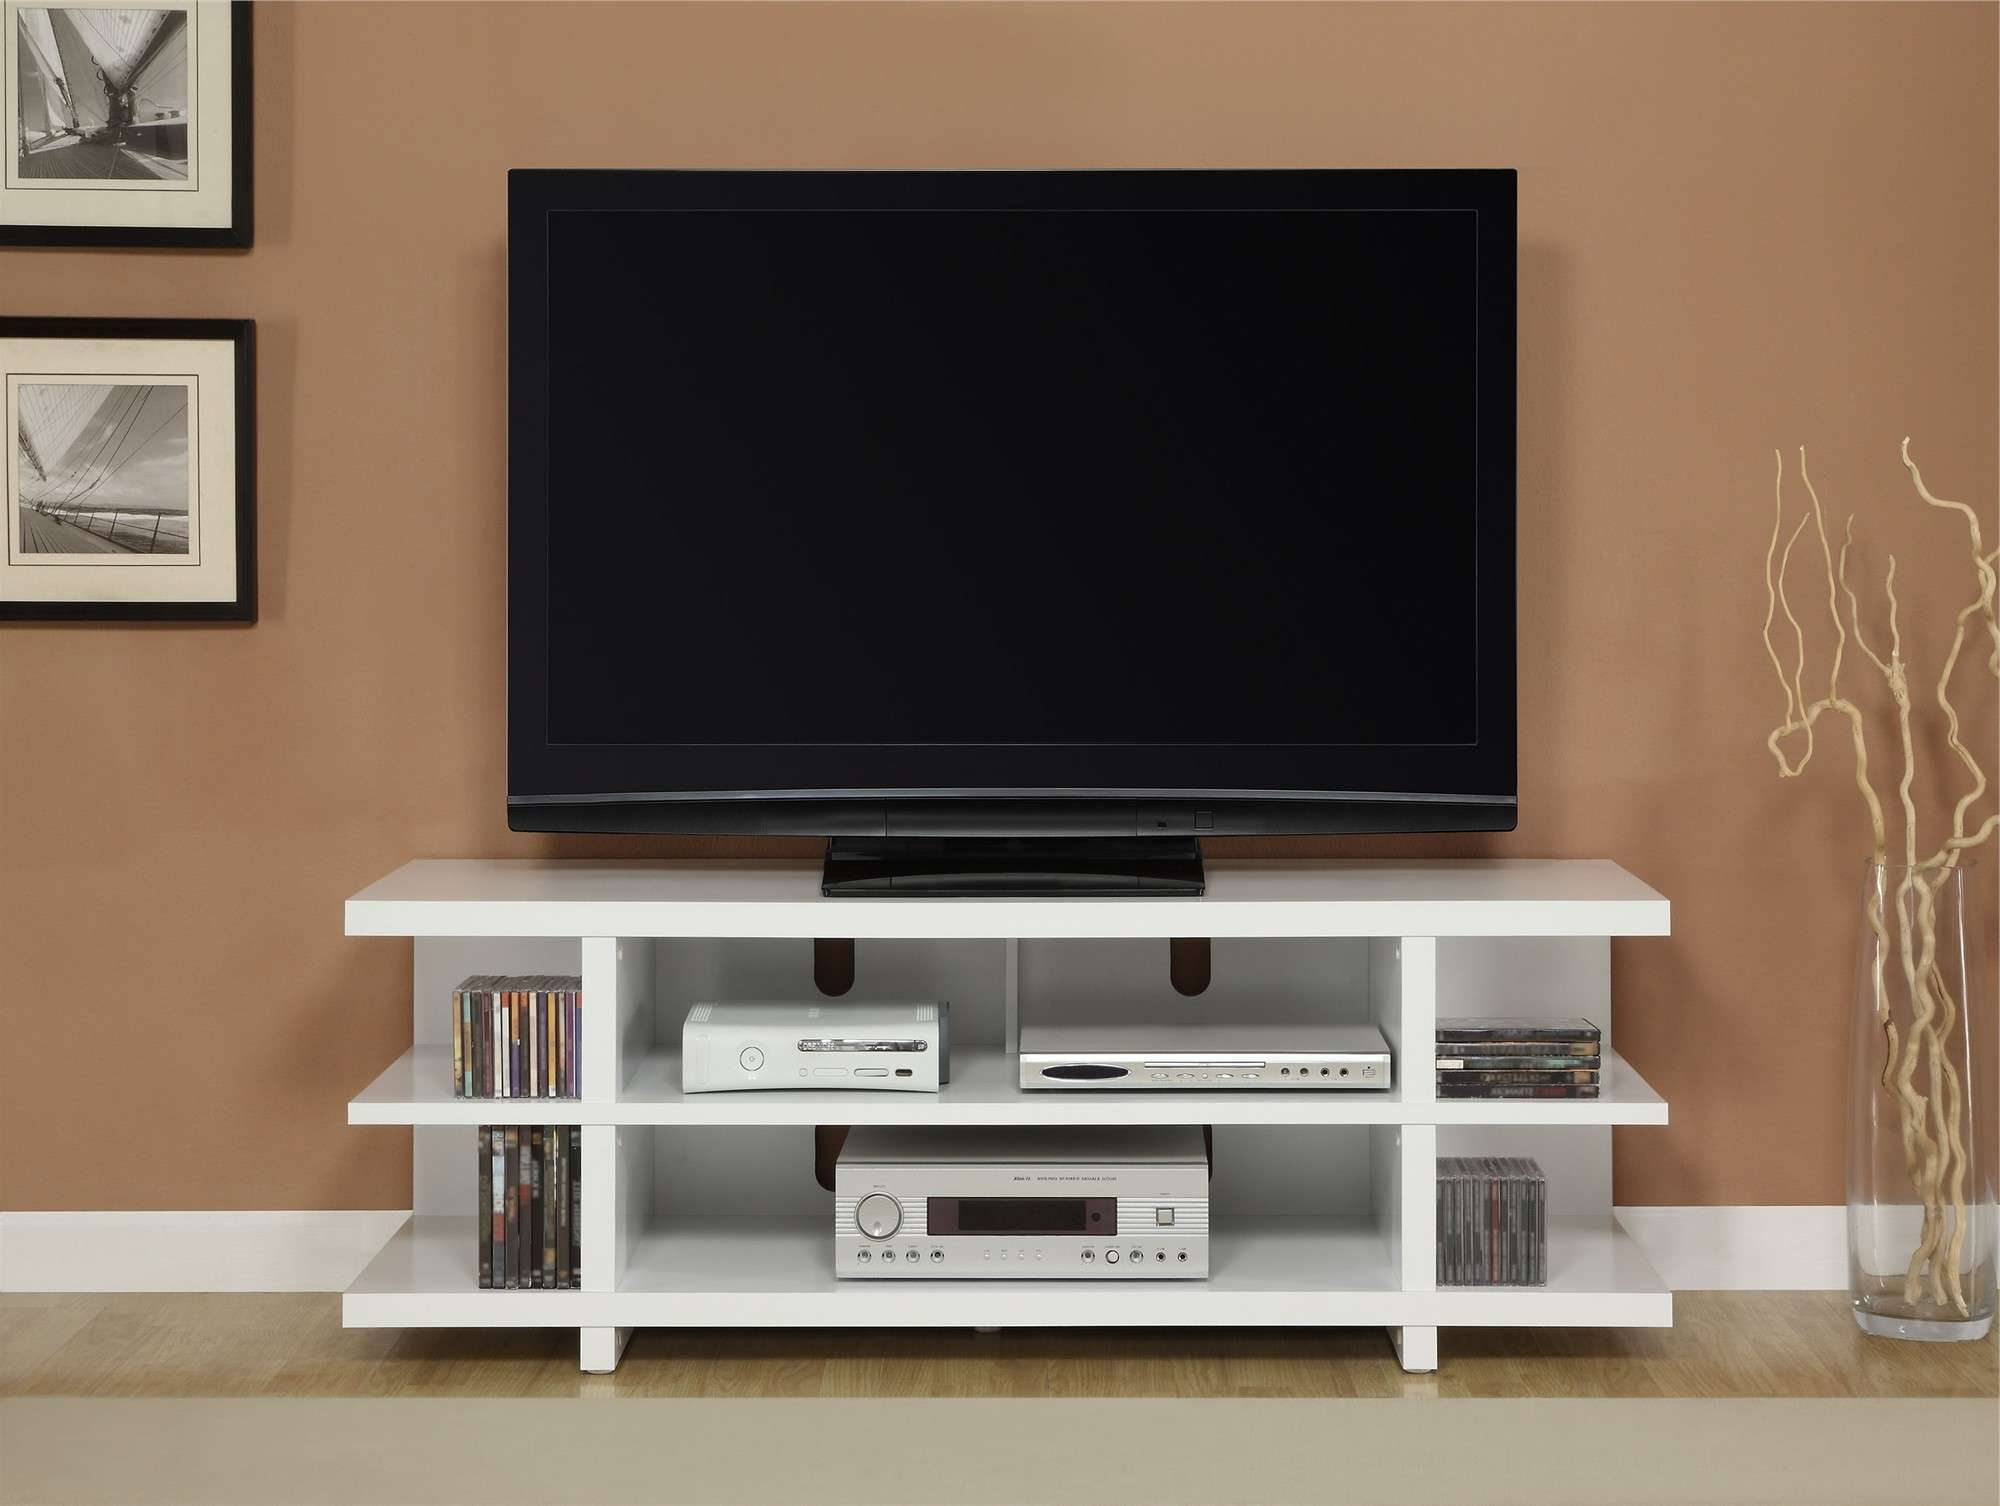 White Stained Wooden Tv Stand Having Several Open Shelves For With Regard To Wooden Tv Stands For Flat Screens (View 14 of 15)